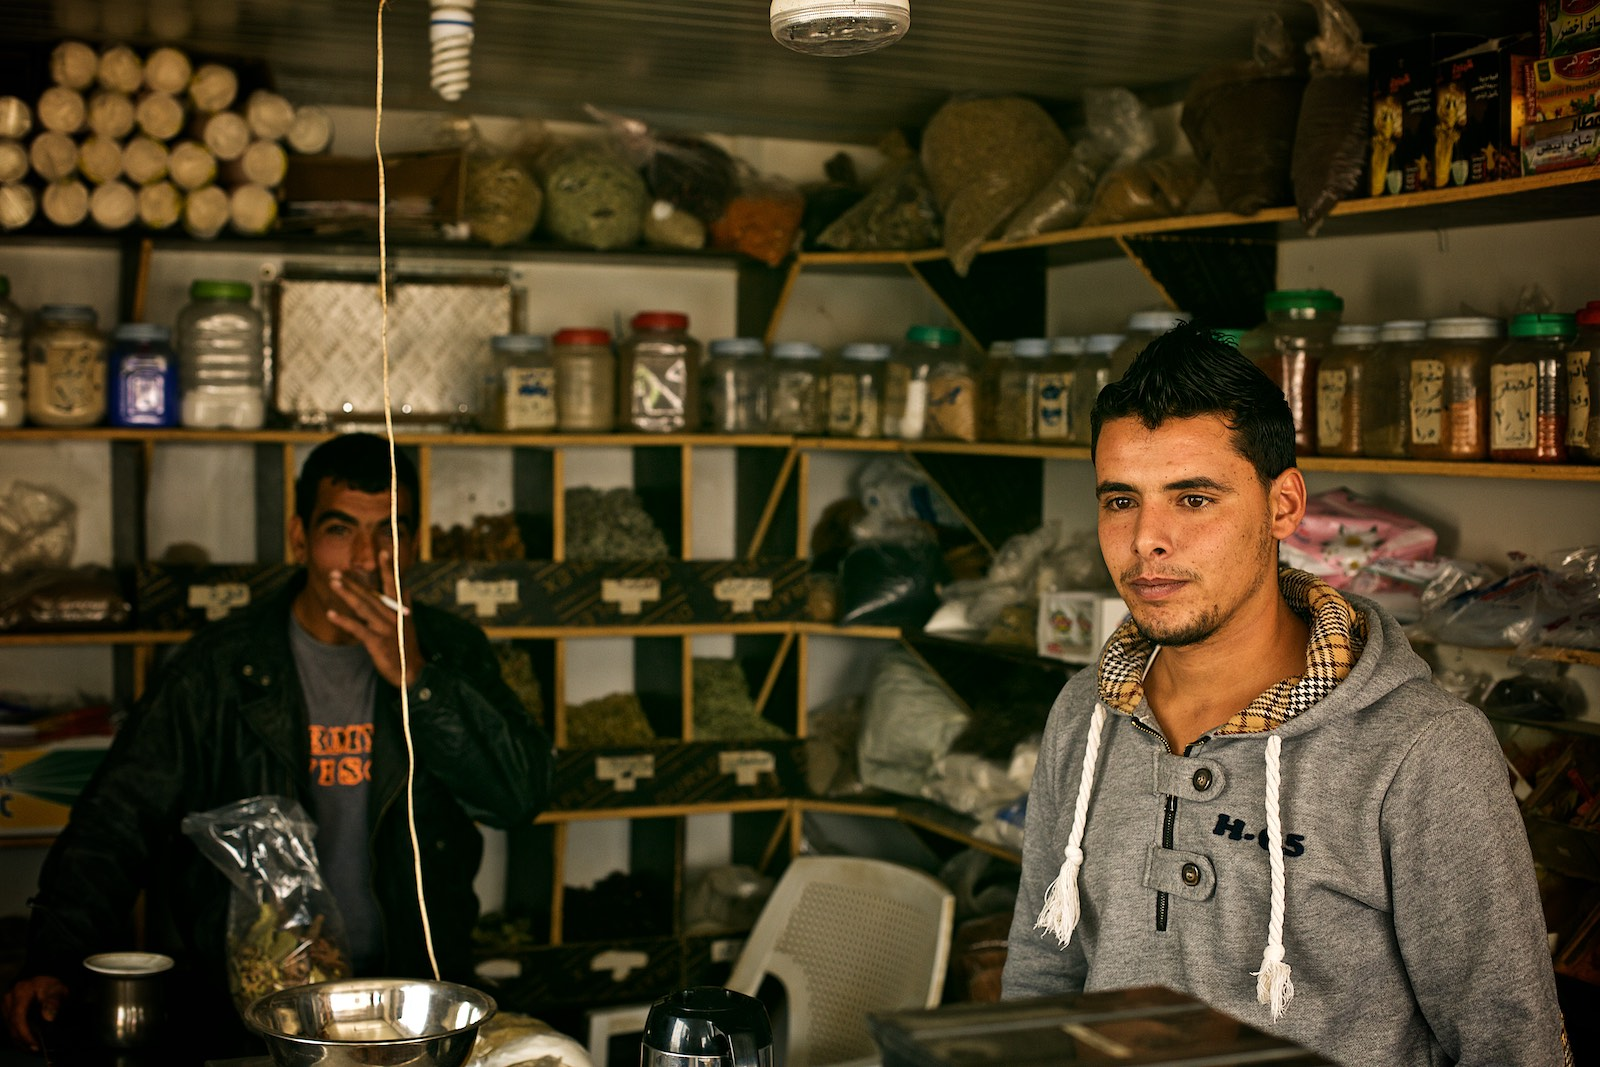 I met Abdullah in a shop where his cousin works as a shop assistant selling spices and herbs.(photo: Denis Bosnic)